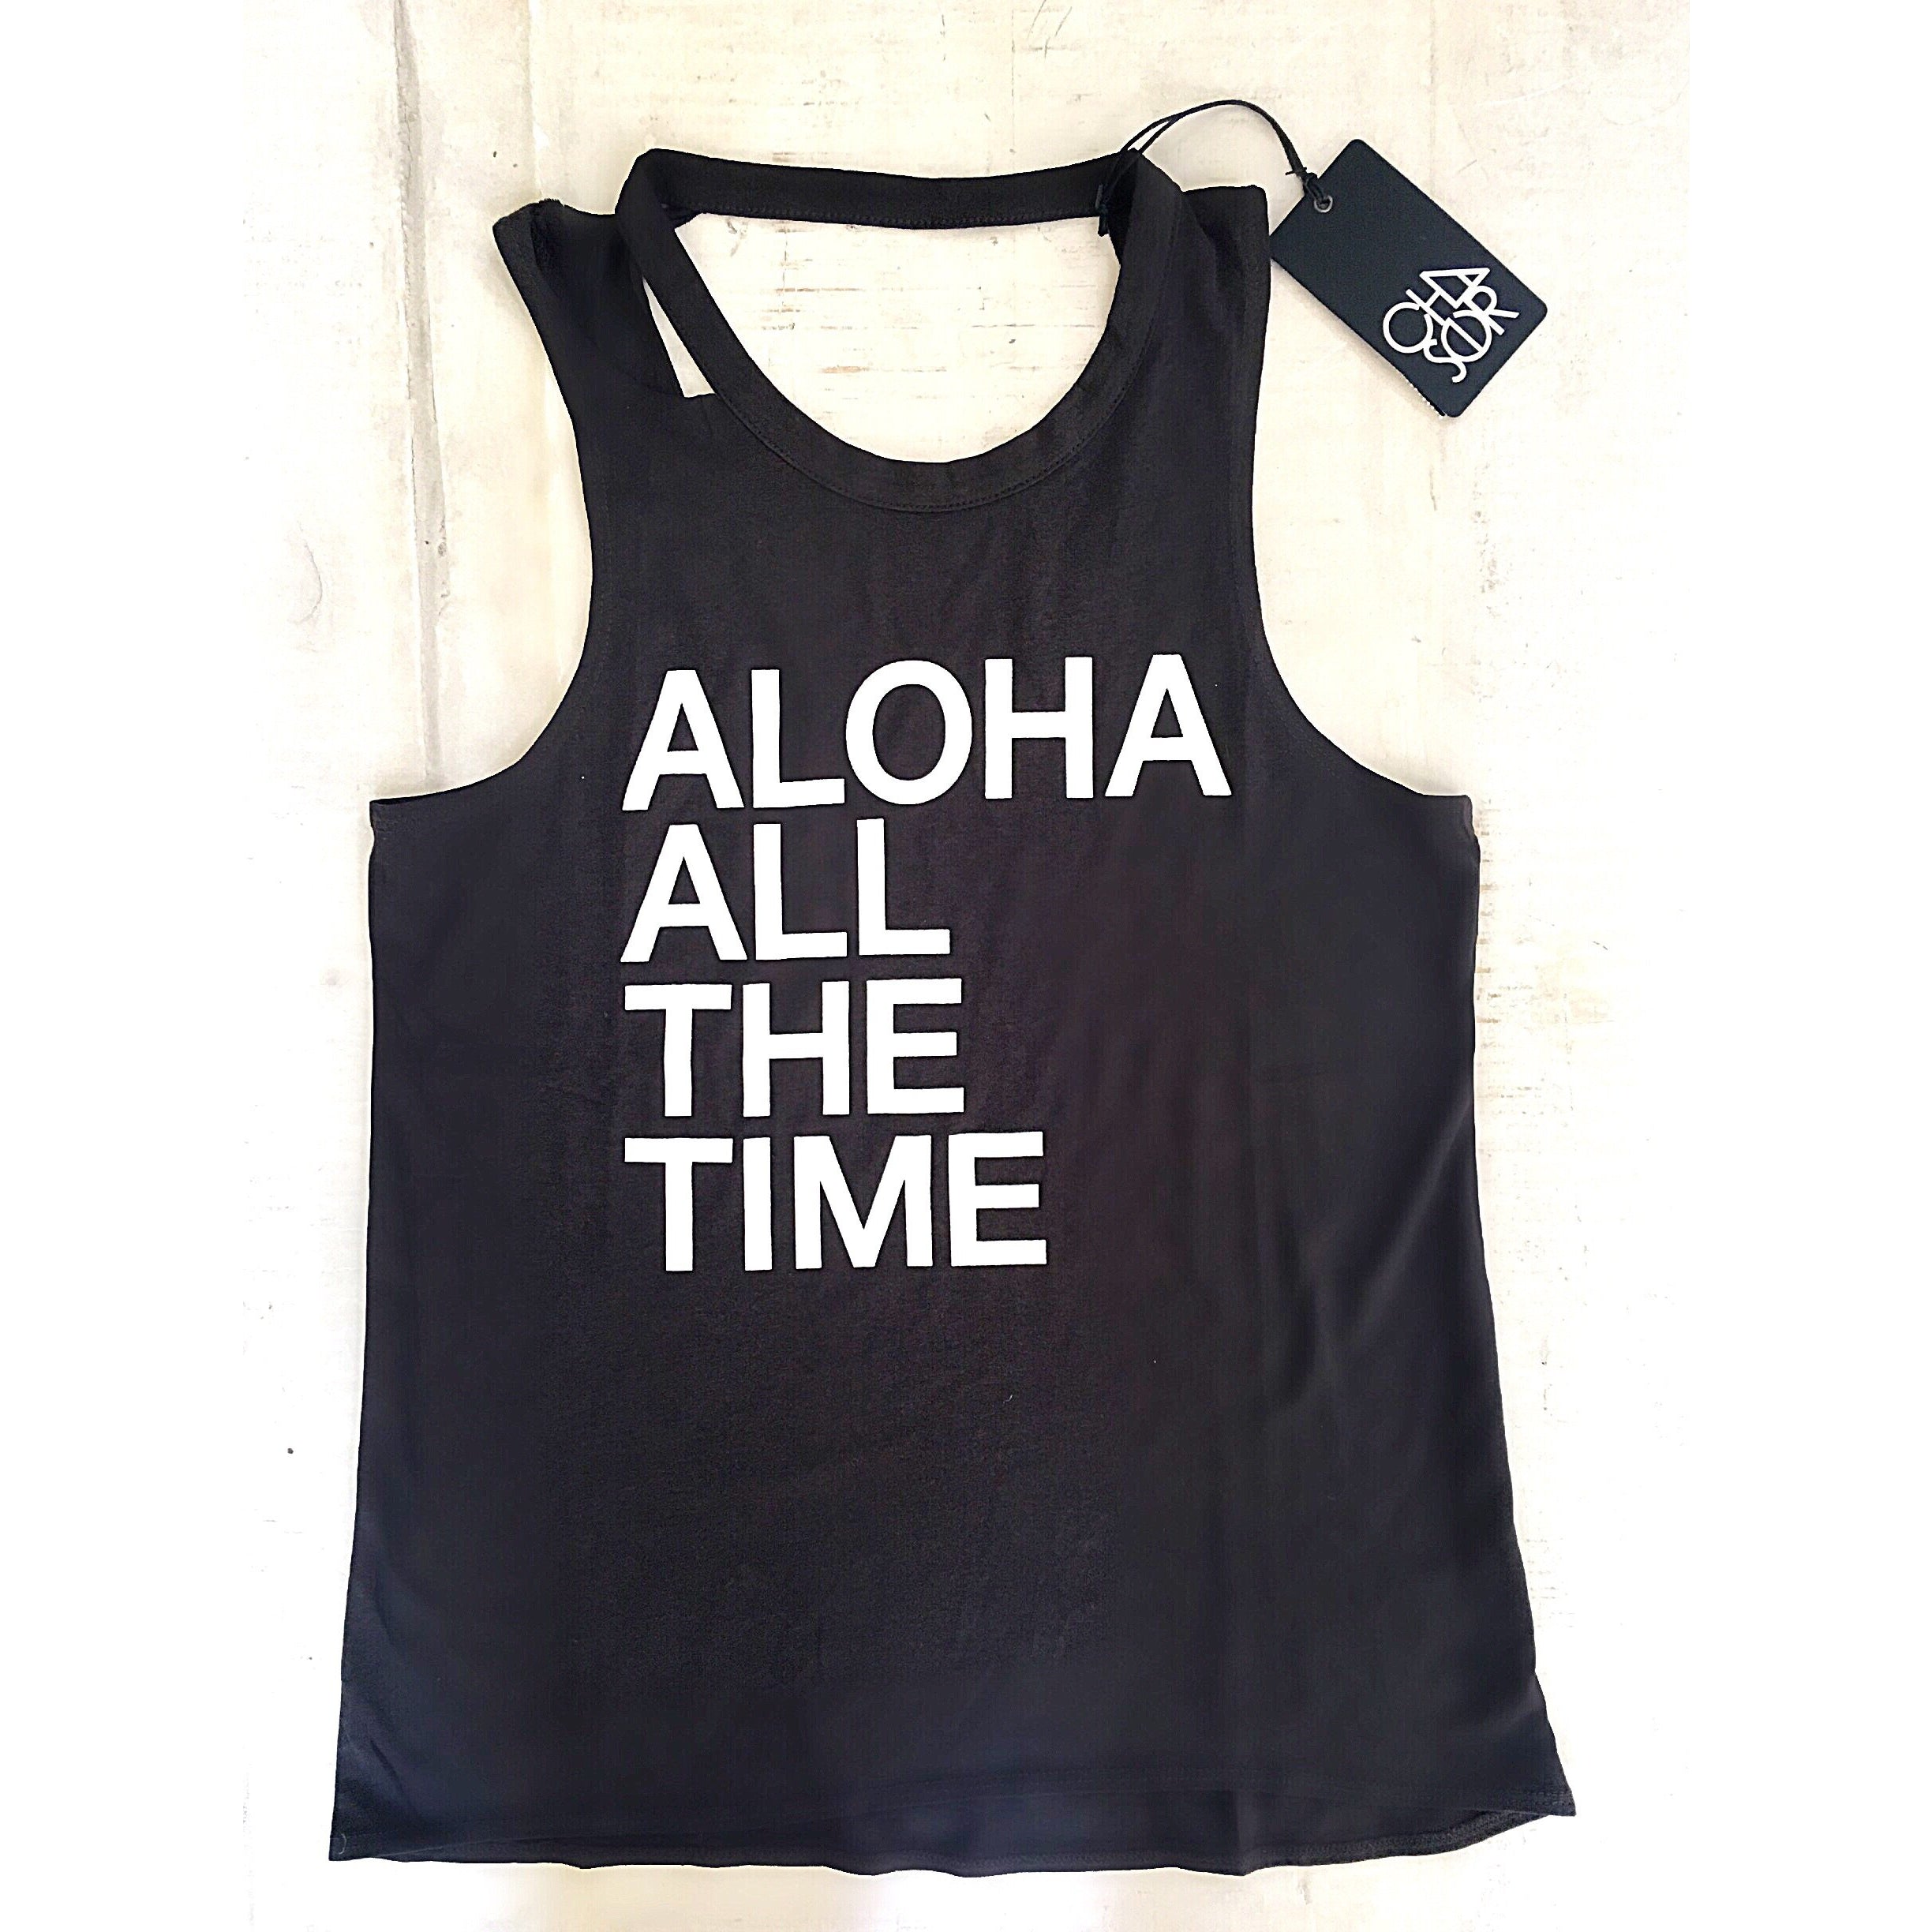 SALE ! Aloha All The Time T-Shirt Top by Chaser - Glamco Boutique